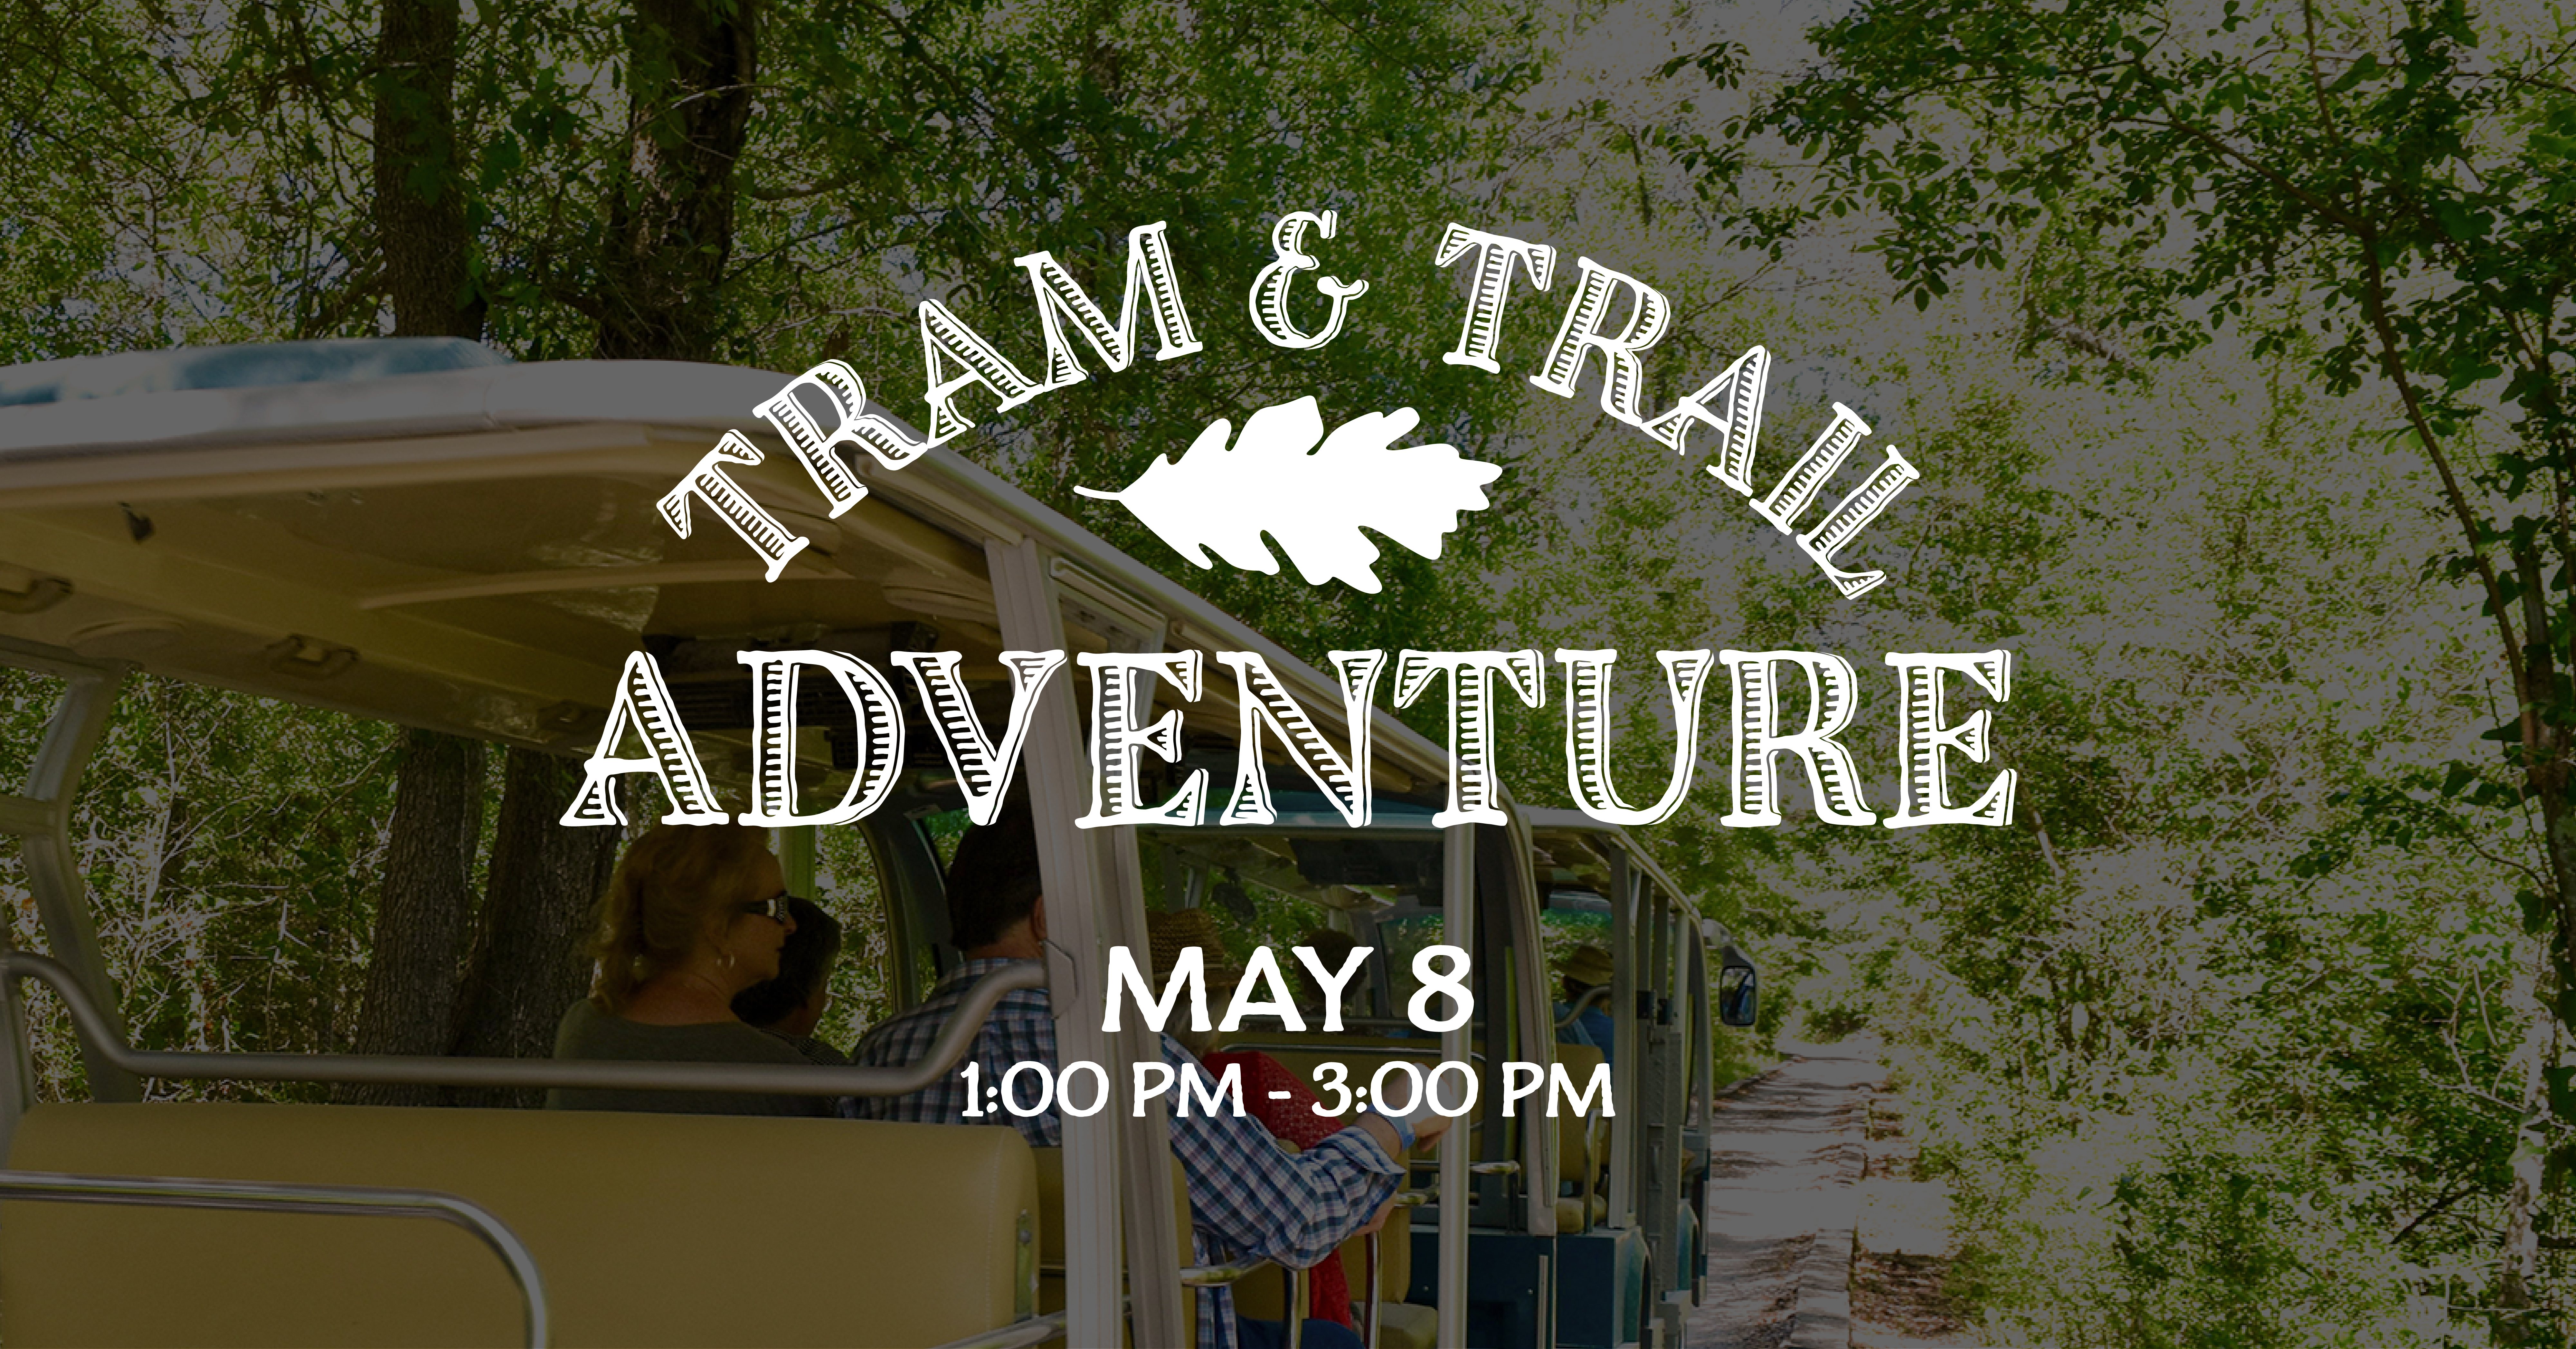 Tram & Trail Adventure